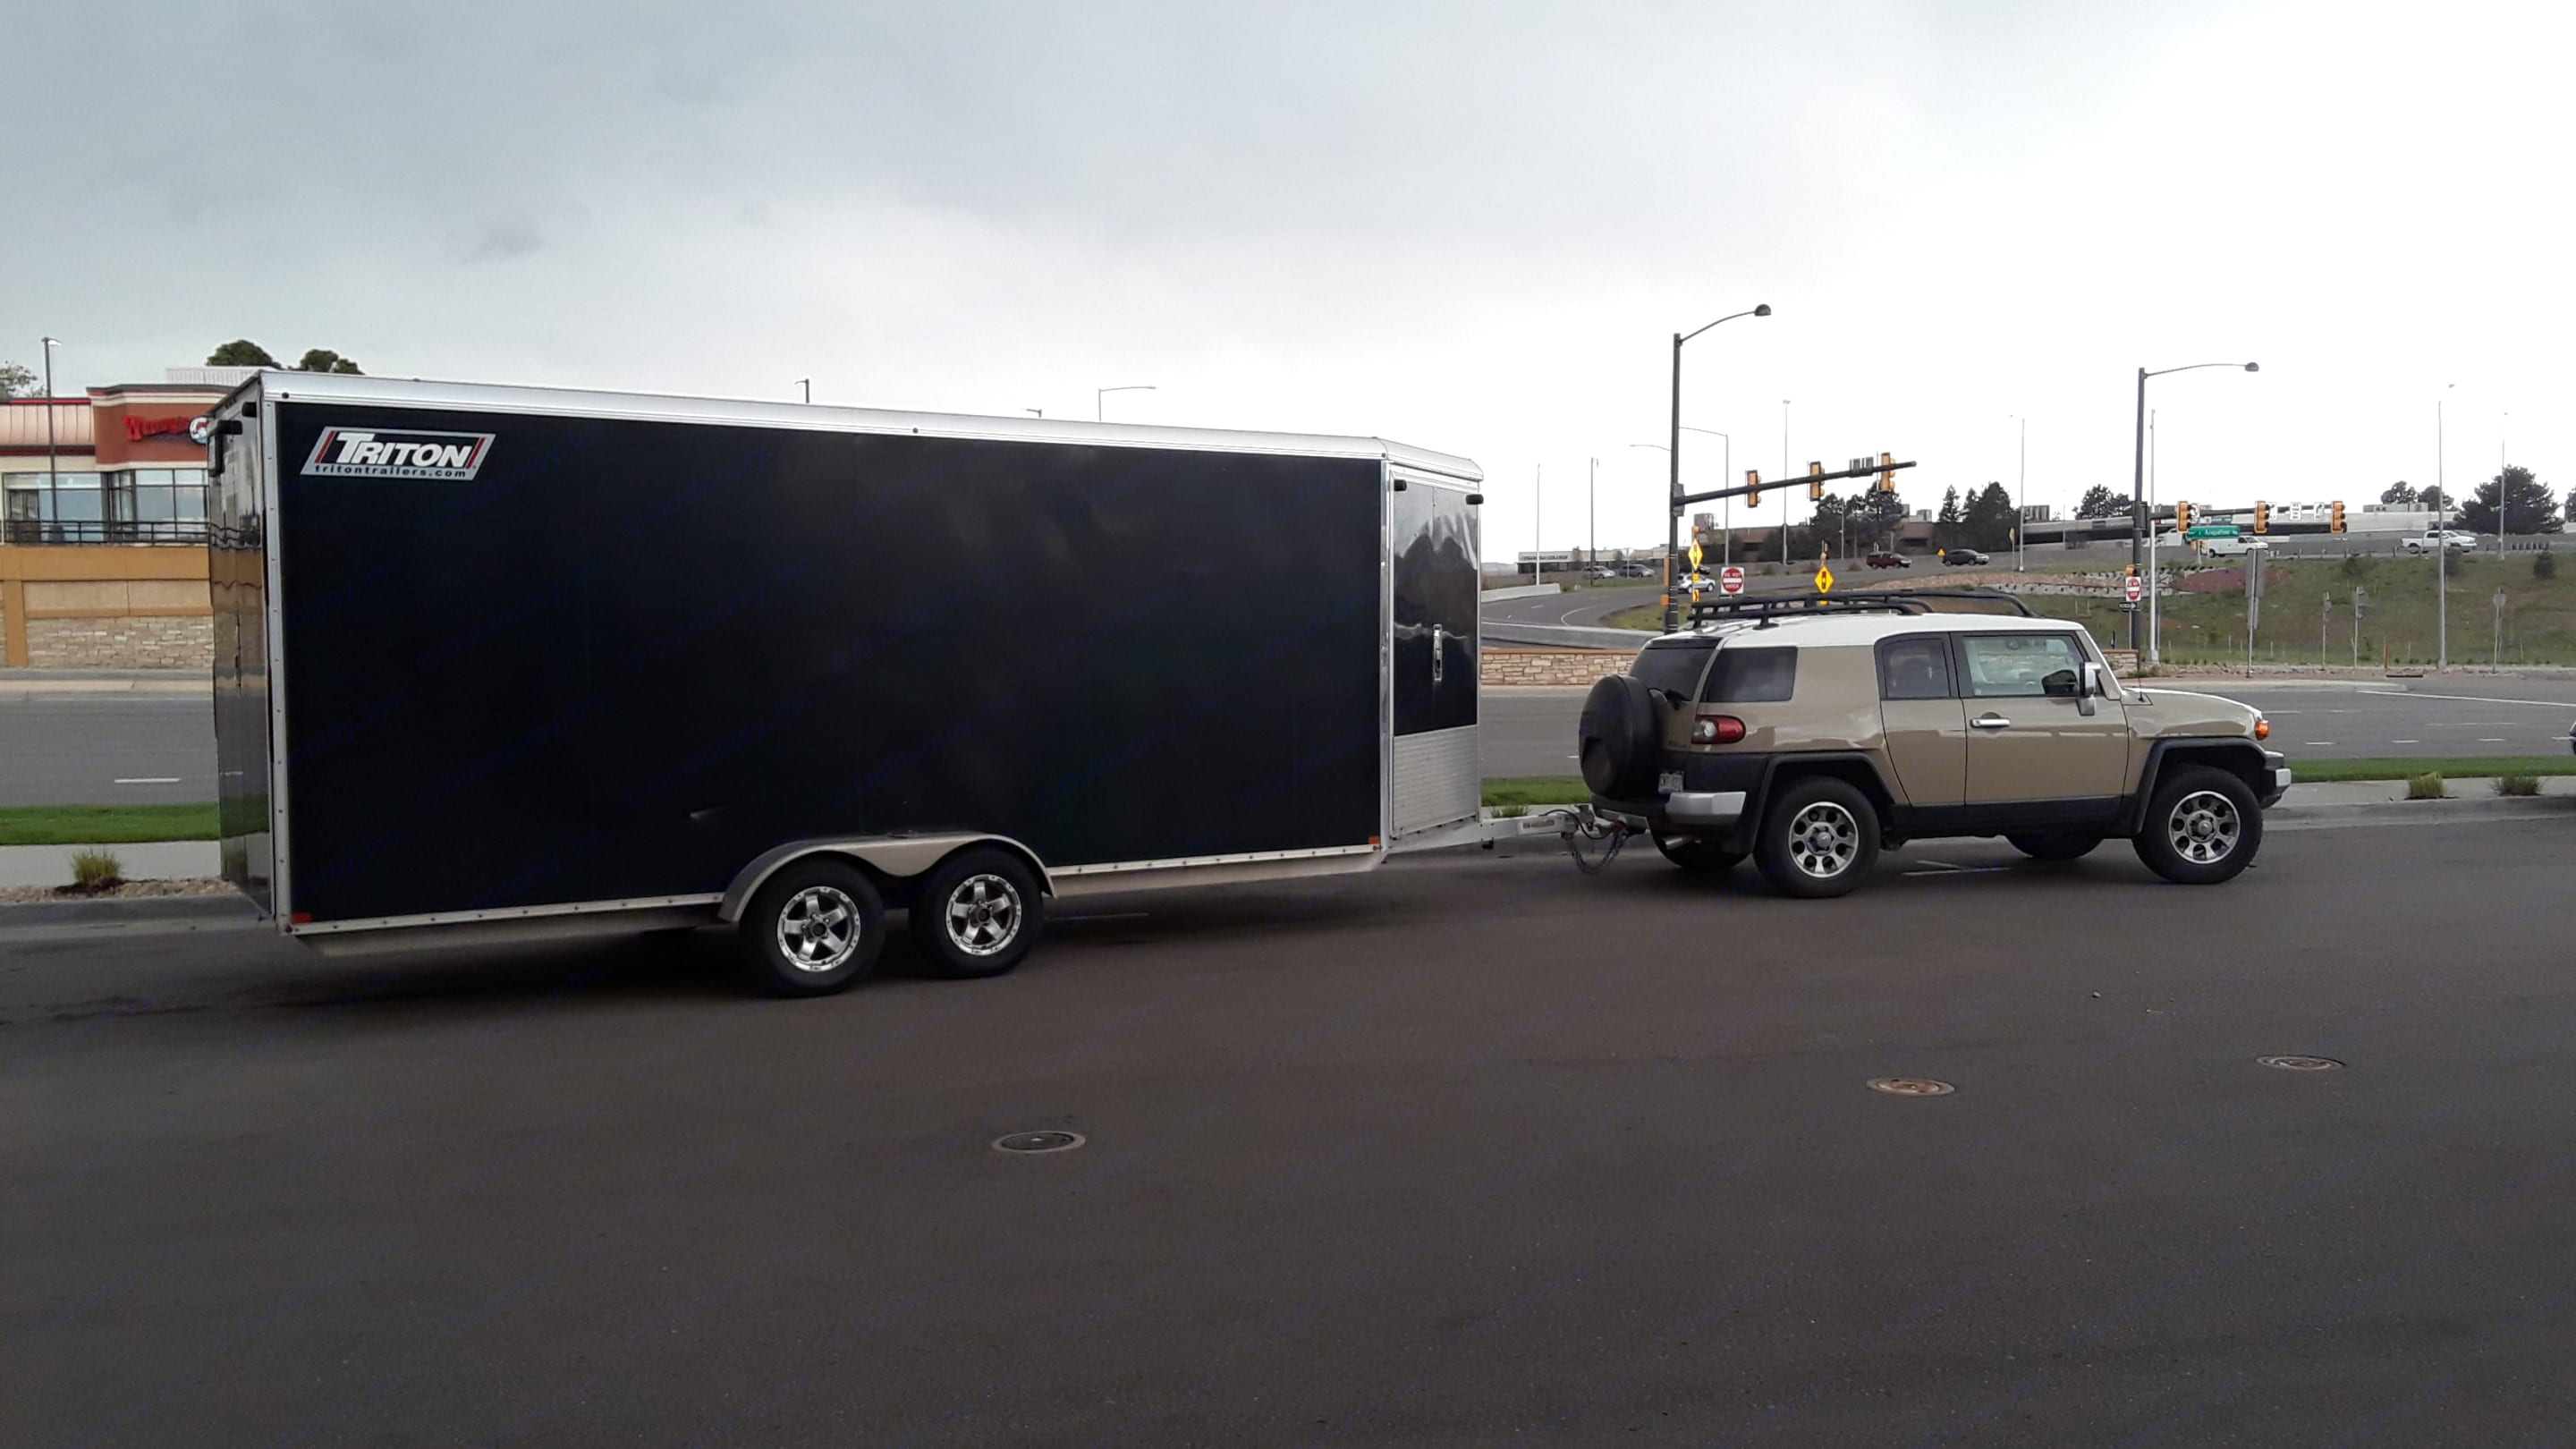 Need a Tow Vehicle? We rent an FJ Cruiser  we call Fiona, and a Ford F-150 Ecoboost that we call Trigger here as well. Triton 18' Cargo Trailer 2015